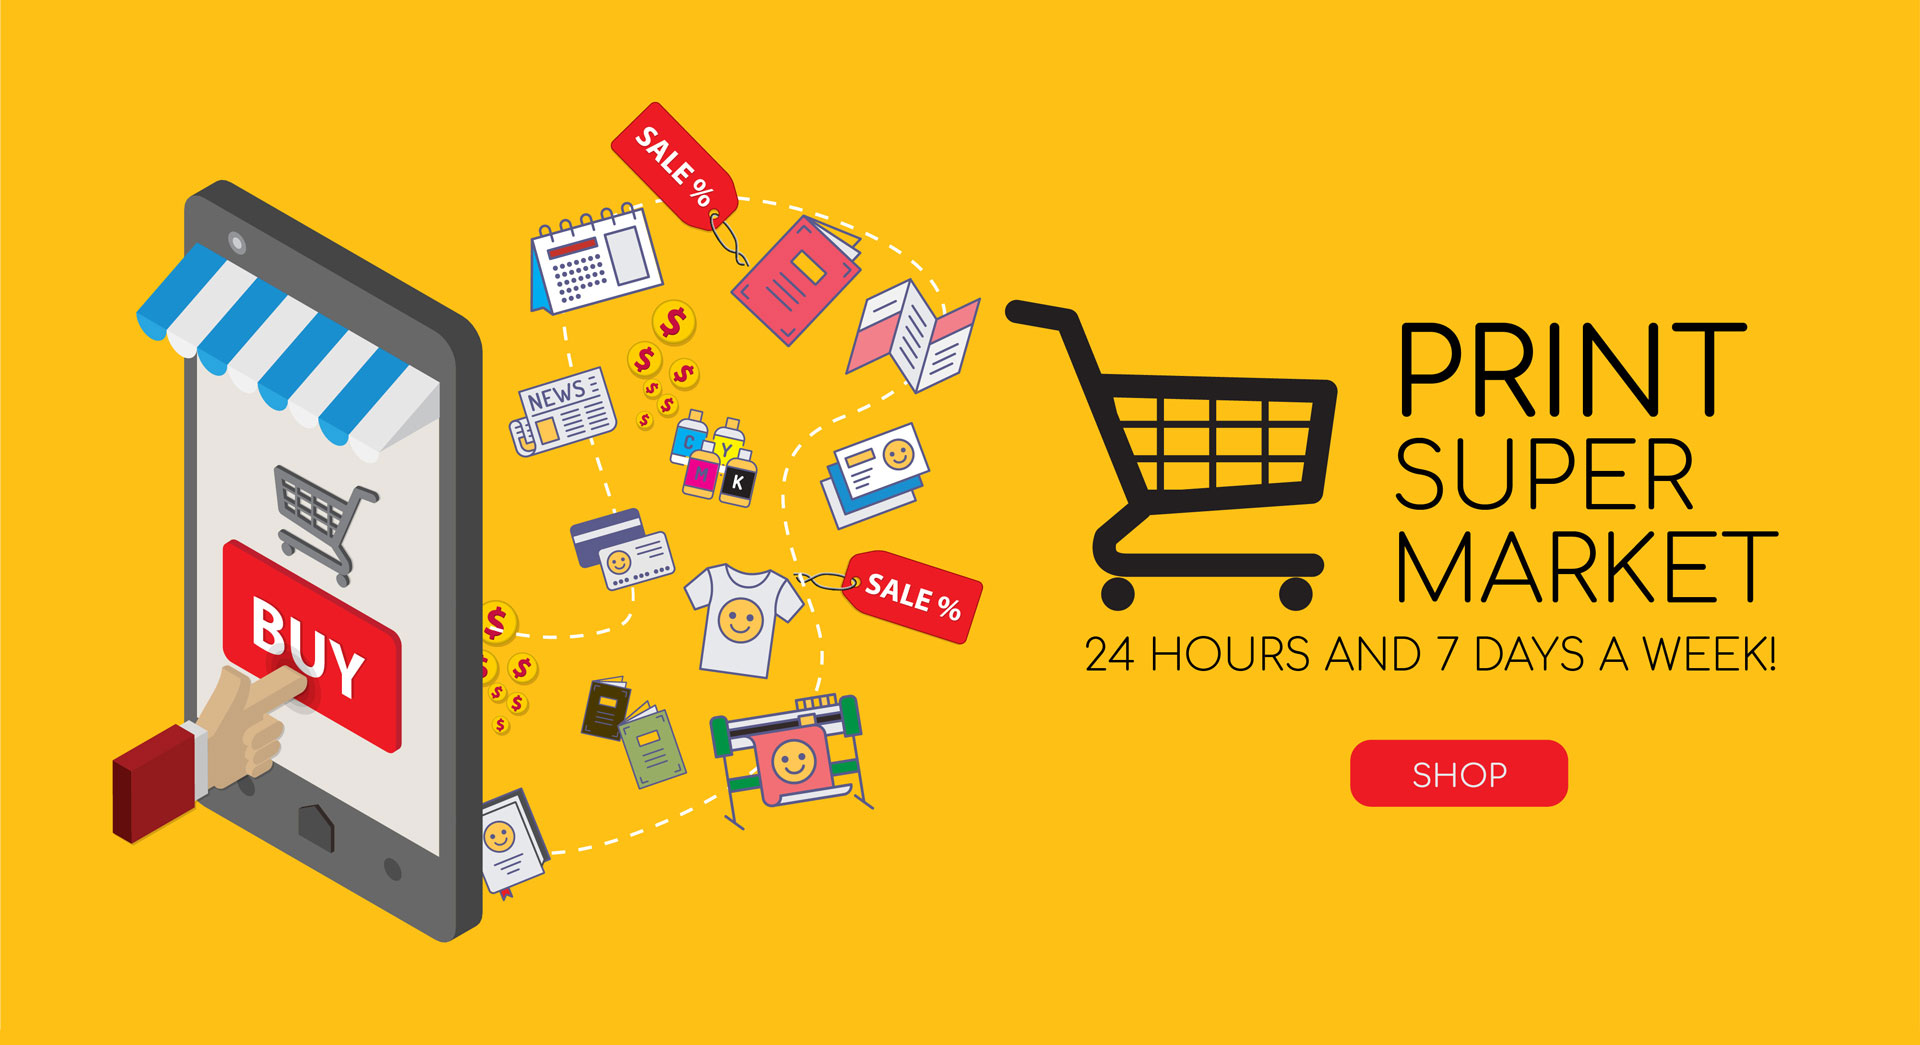 Print Super Market 24 Hours and 7 Days a week!